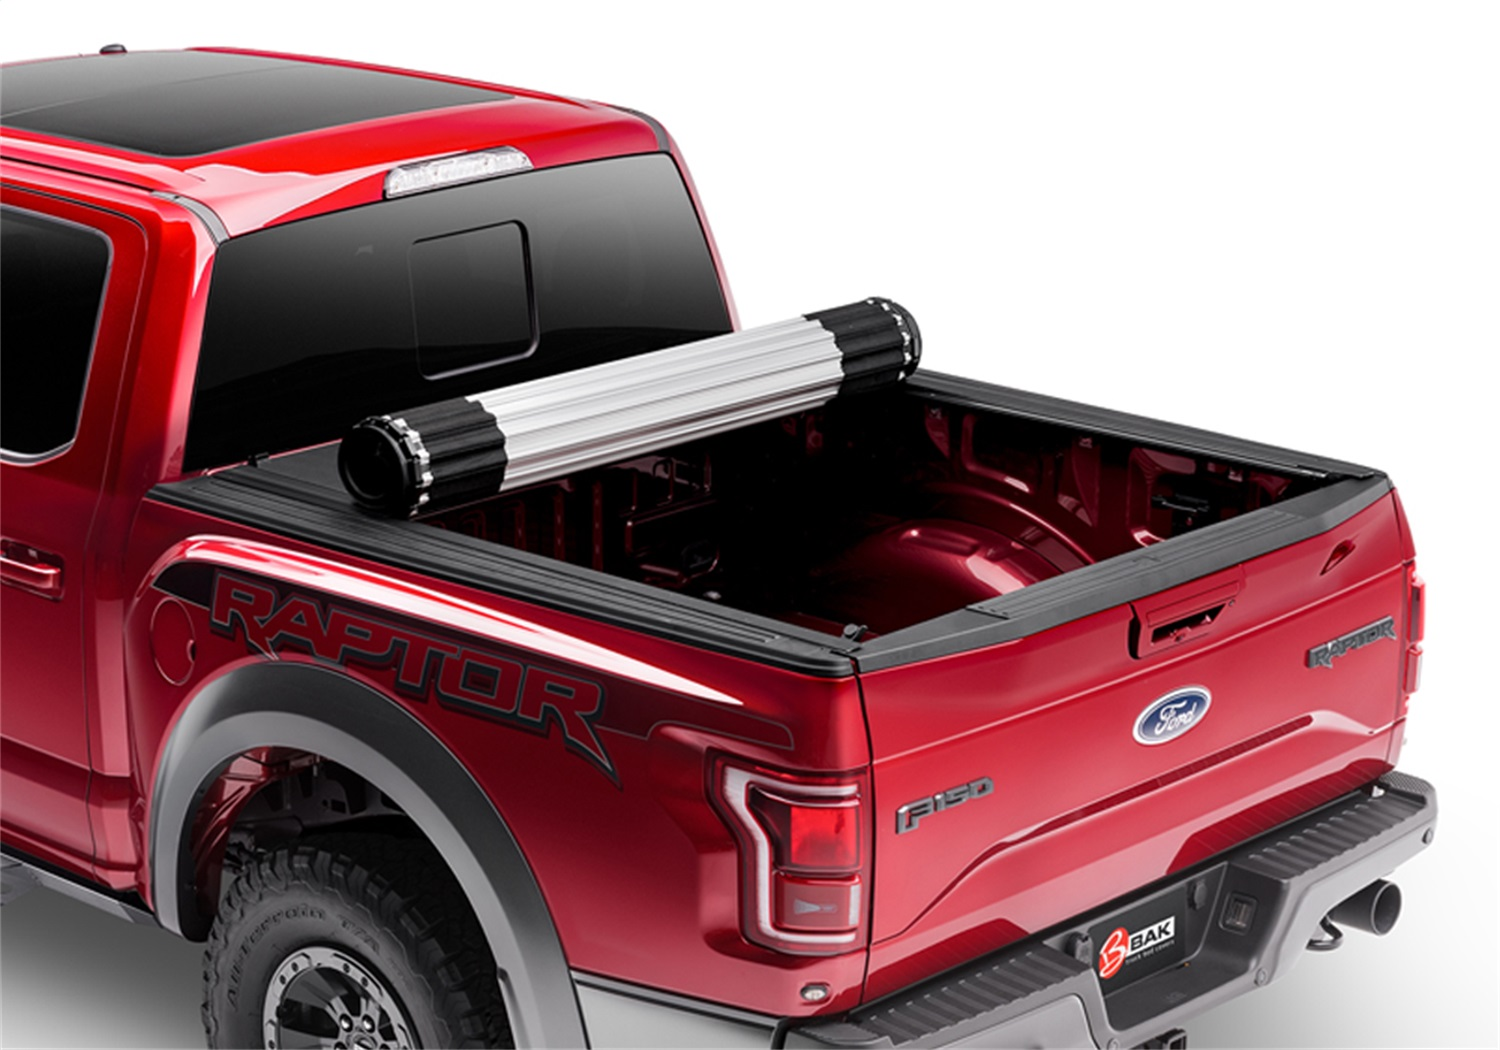 BAK Industries 79602 Revolver X4 Hard Rolling Truck Bed Cover Fits Ridgeline